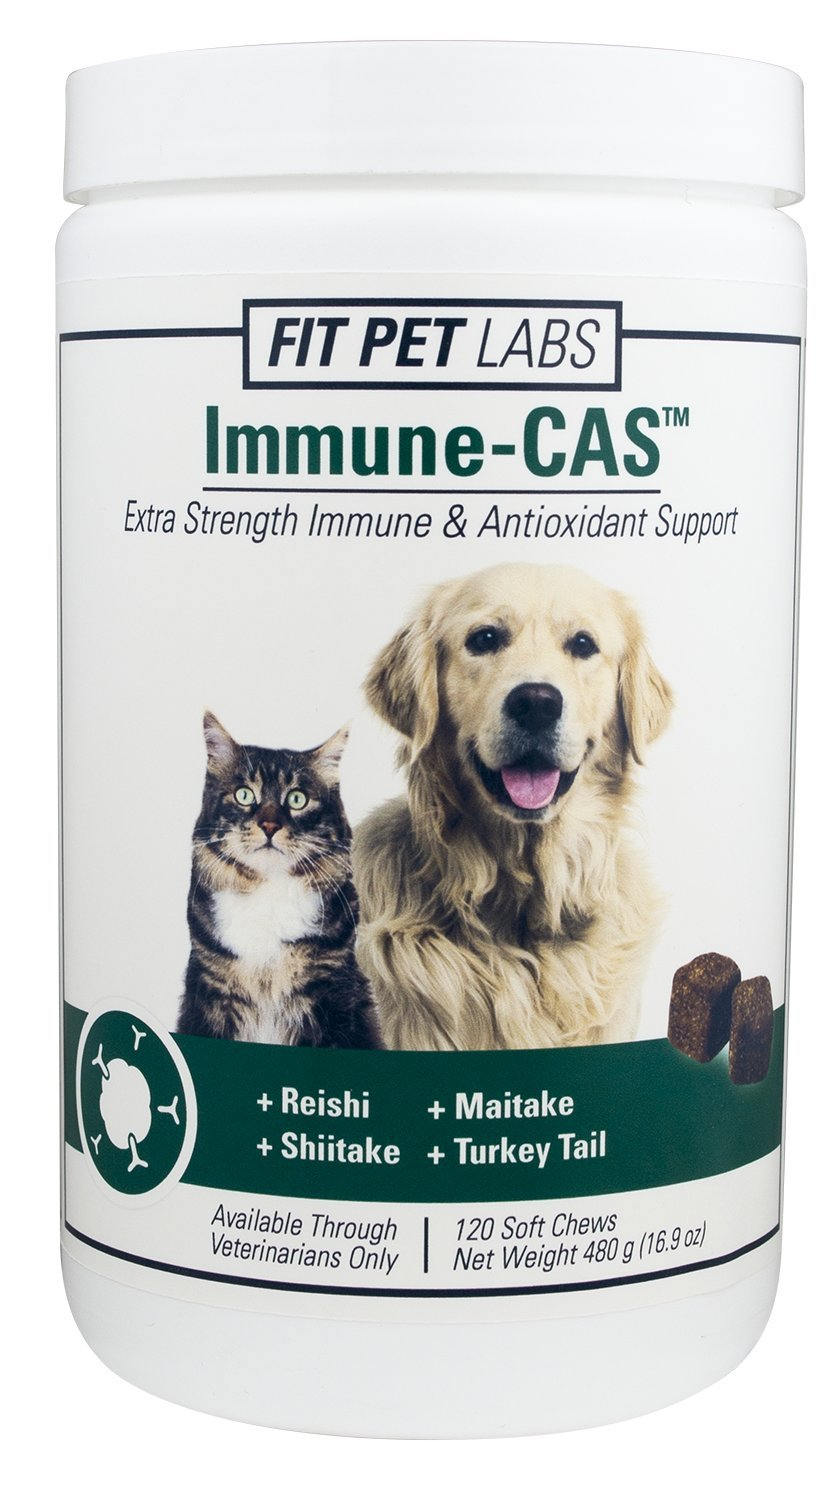 Fit Pet Labs Immune-CAS Extra Strength Immune & Antioxidant Support For Dogs and Cats - 120 Soft Chews by Fit Pet Labs